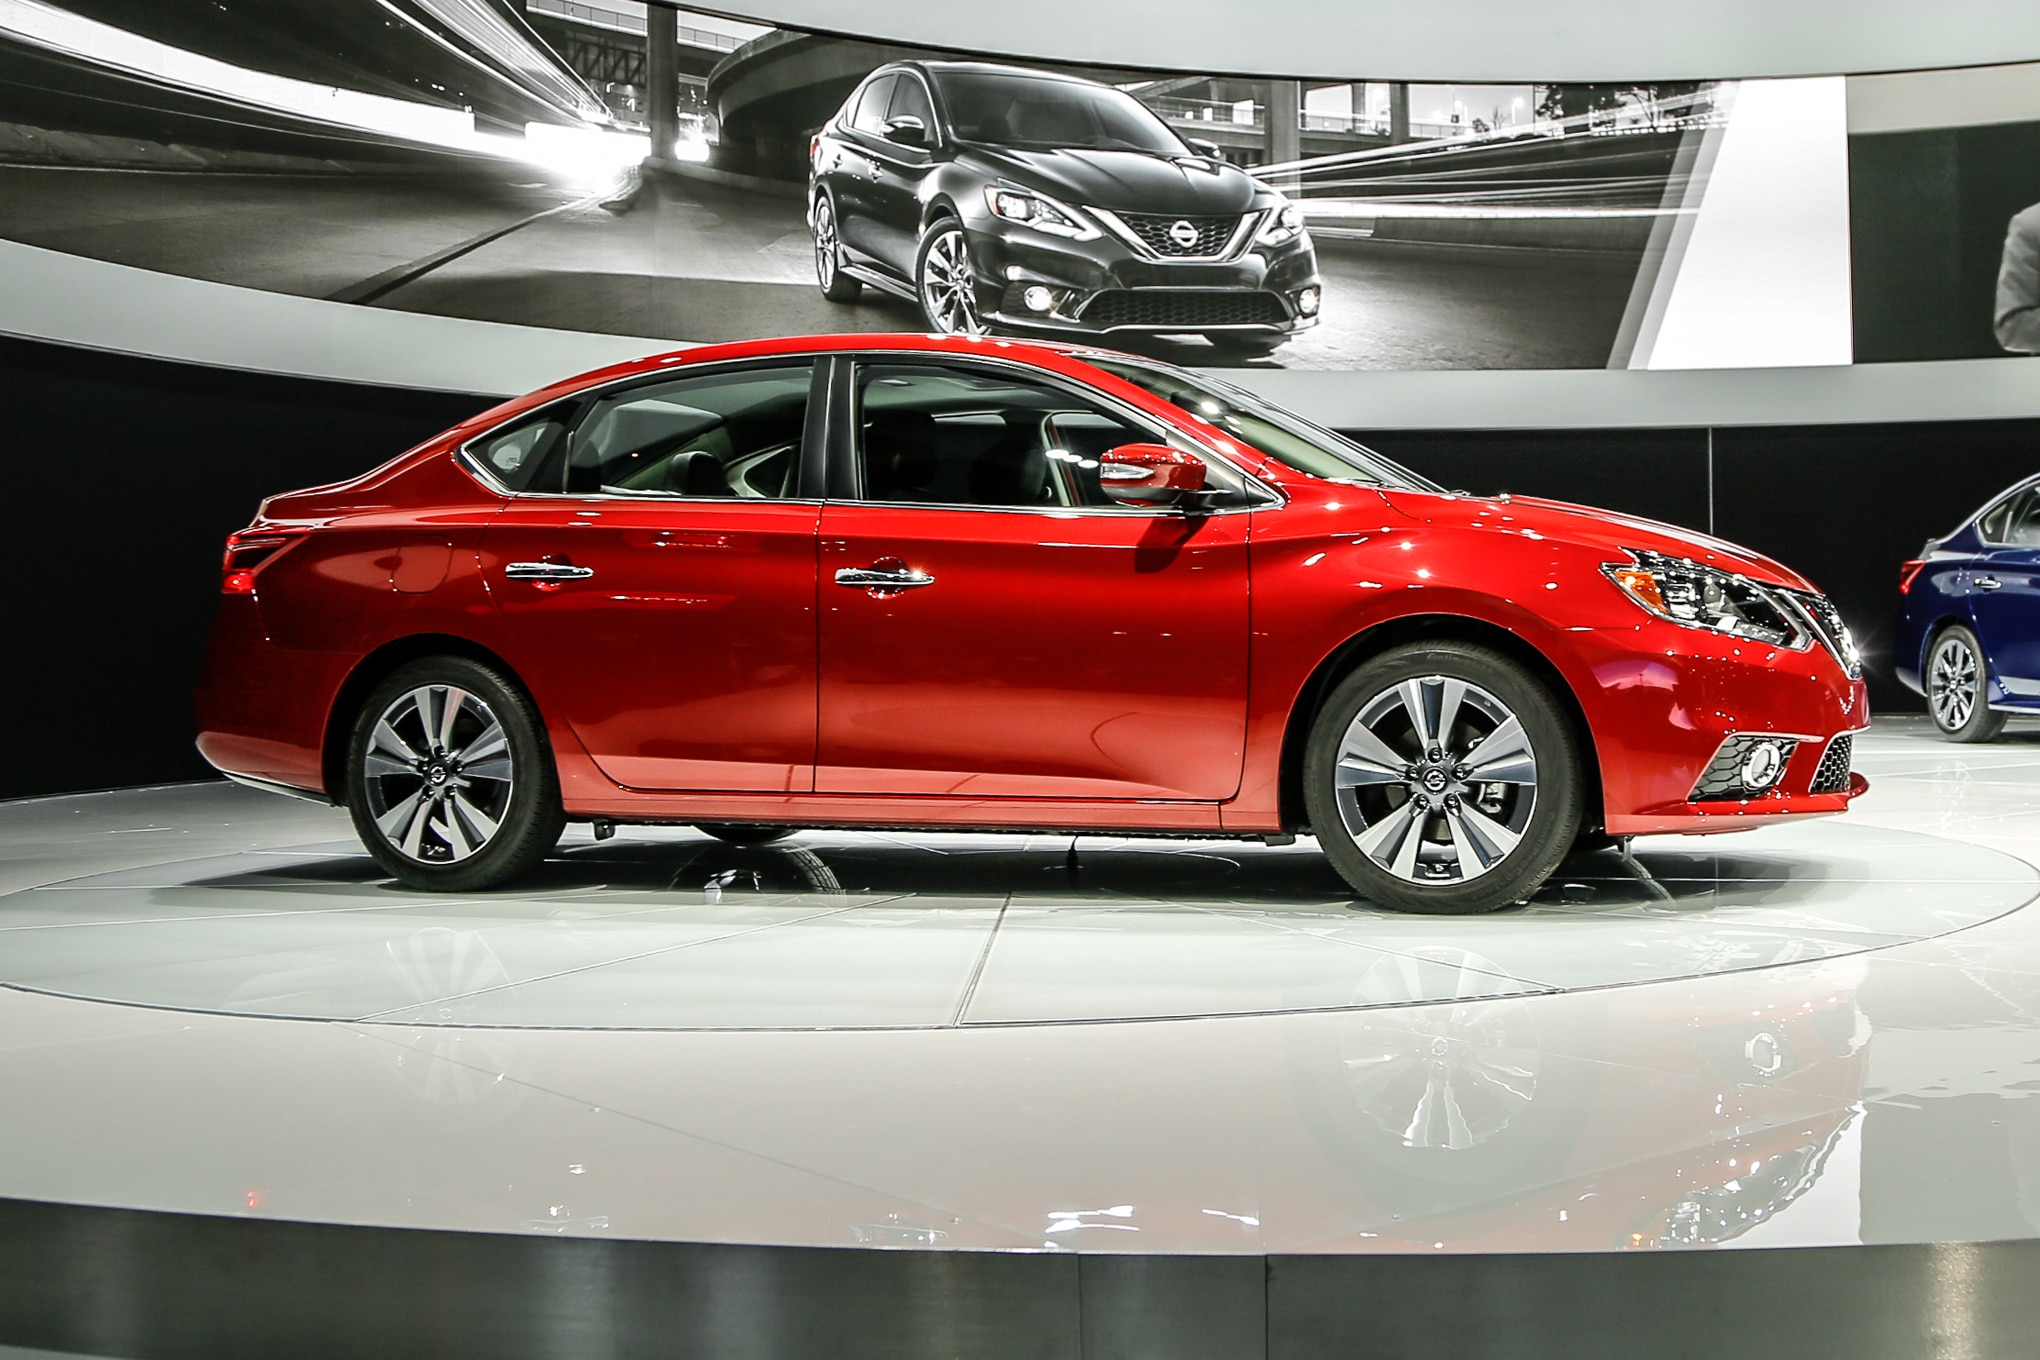 2016 Nissan Sentra Refreshed, Looks More like Altima and ...